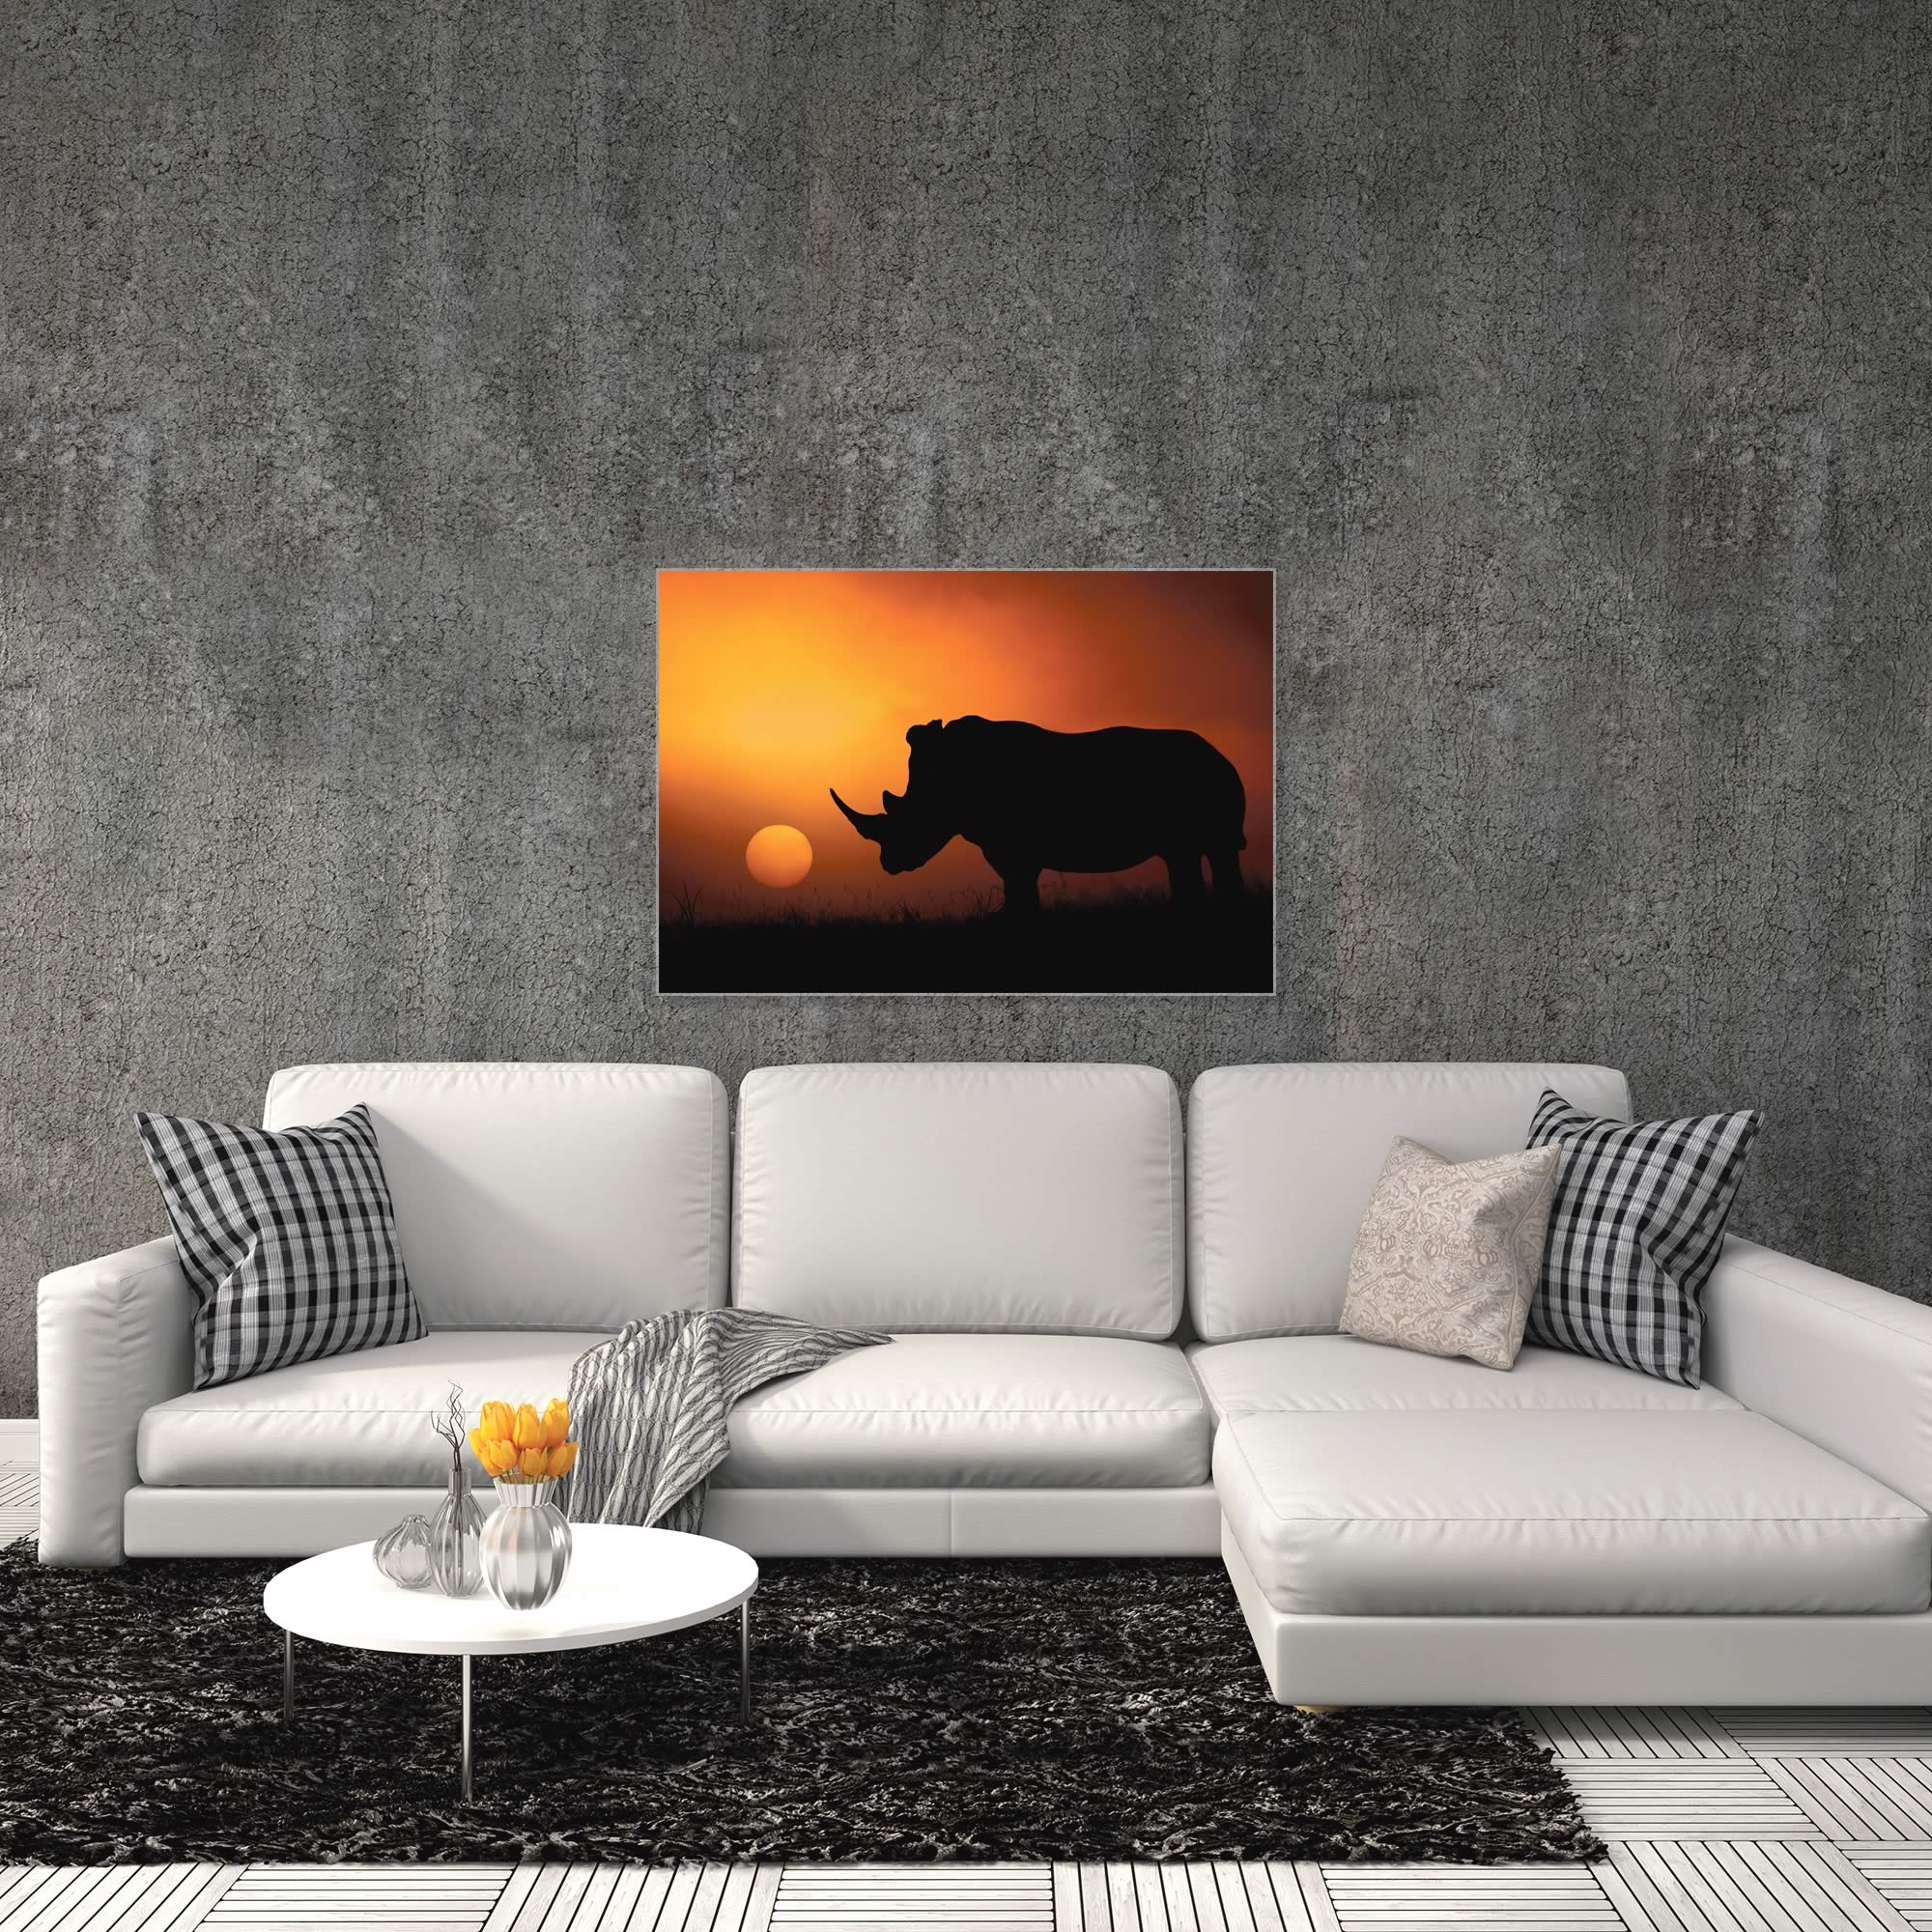 Rhino Sunrise by Mario Moreno - Rhino Silhouette Art on Metal or Acrylic - Alternate View 3